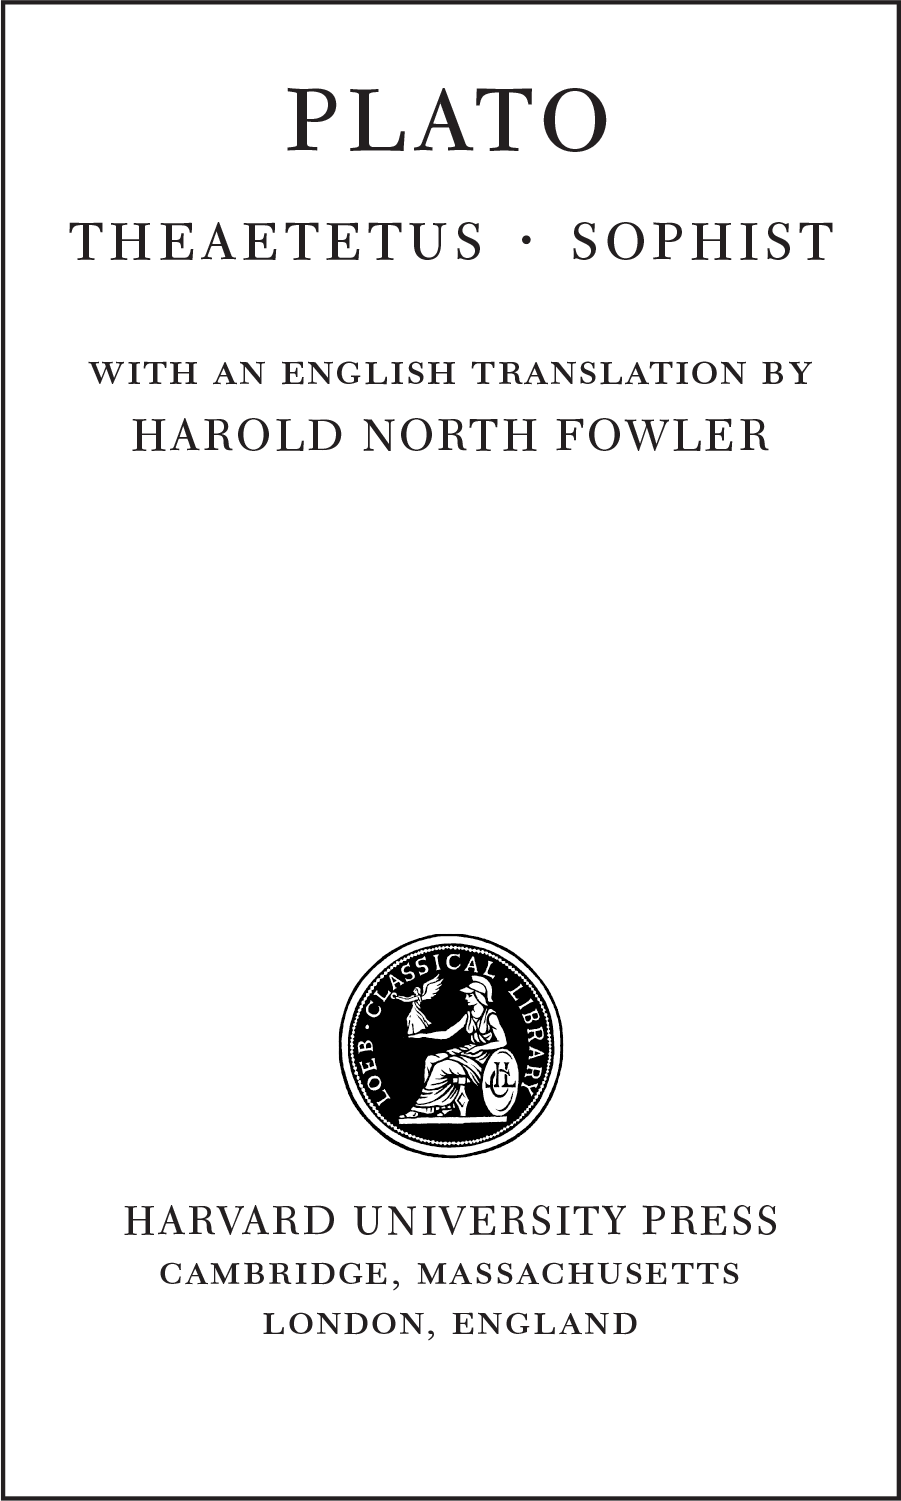 PLATO THEAETETUS • SOPHIST WITH AN ENGLISH TRANSLATION BY HAROLD NORTH FOWLER HARVARD UNIVERSITY PRESS CAMBRIDGE, MASSACHUSETTS LONDON, ENGLAND